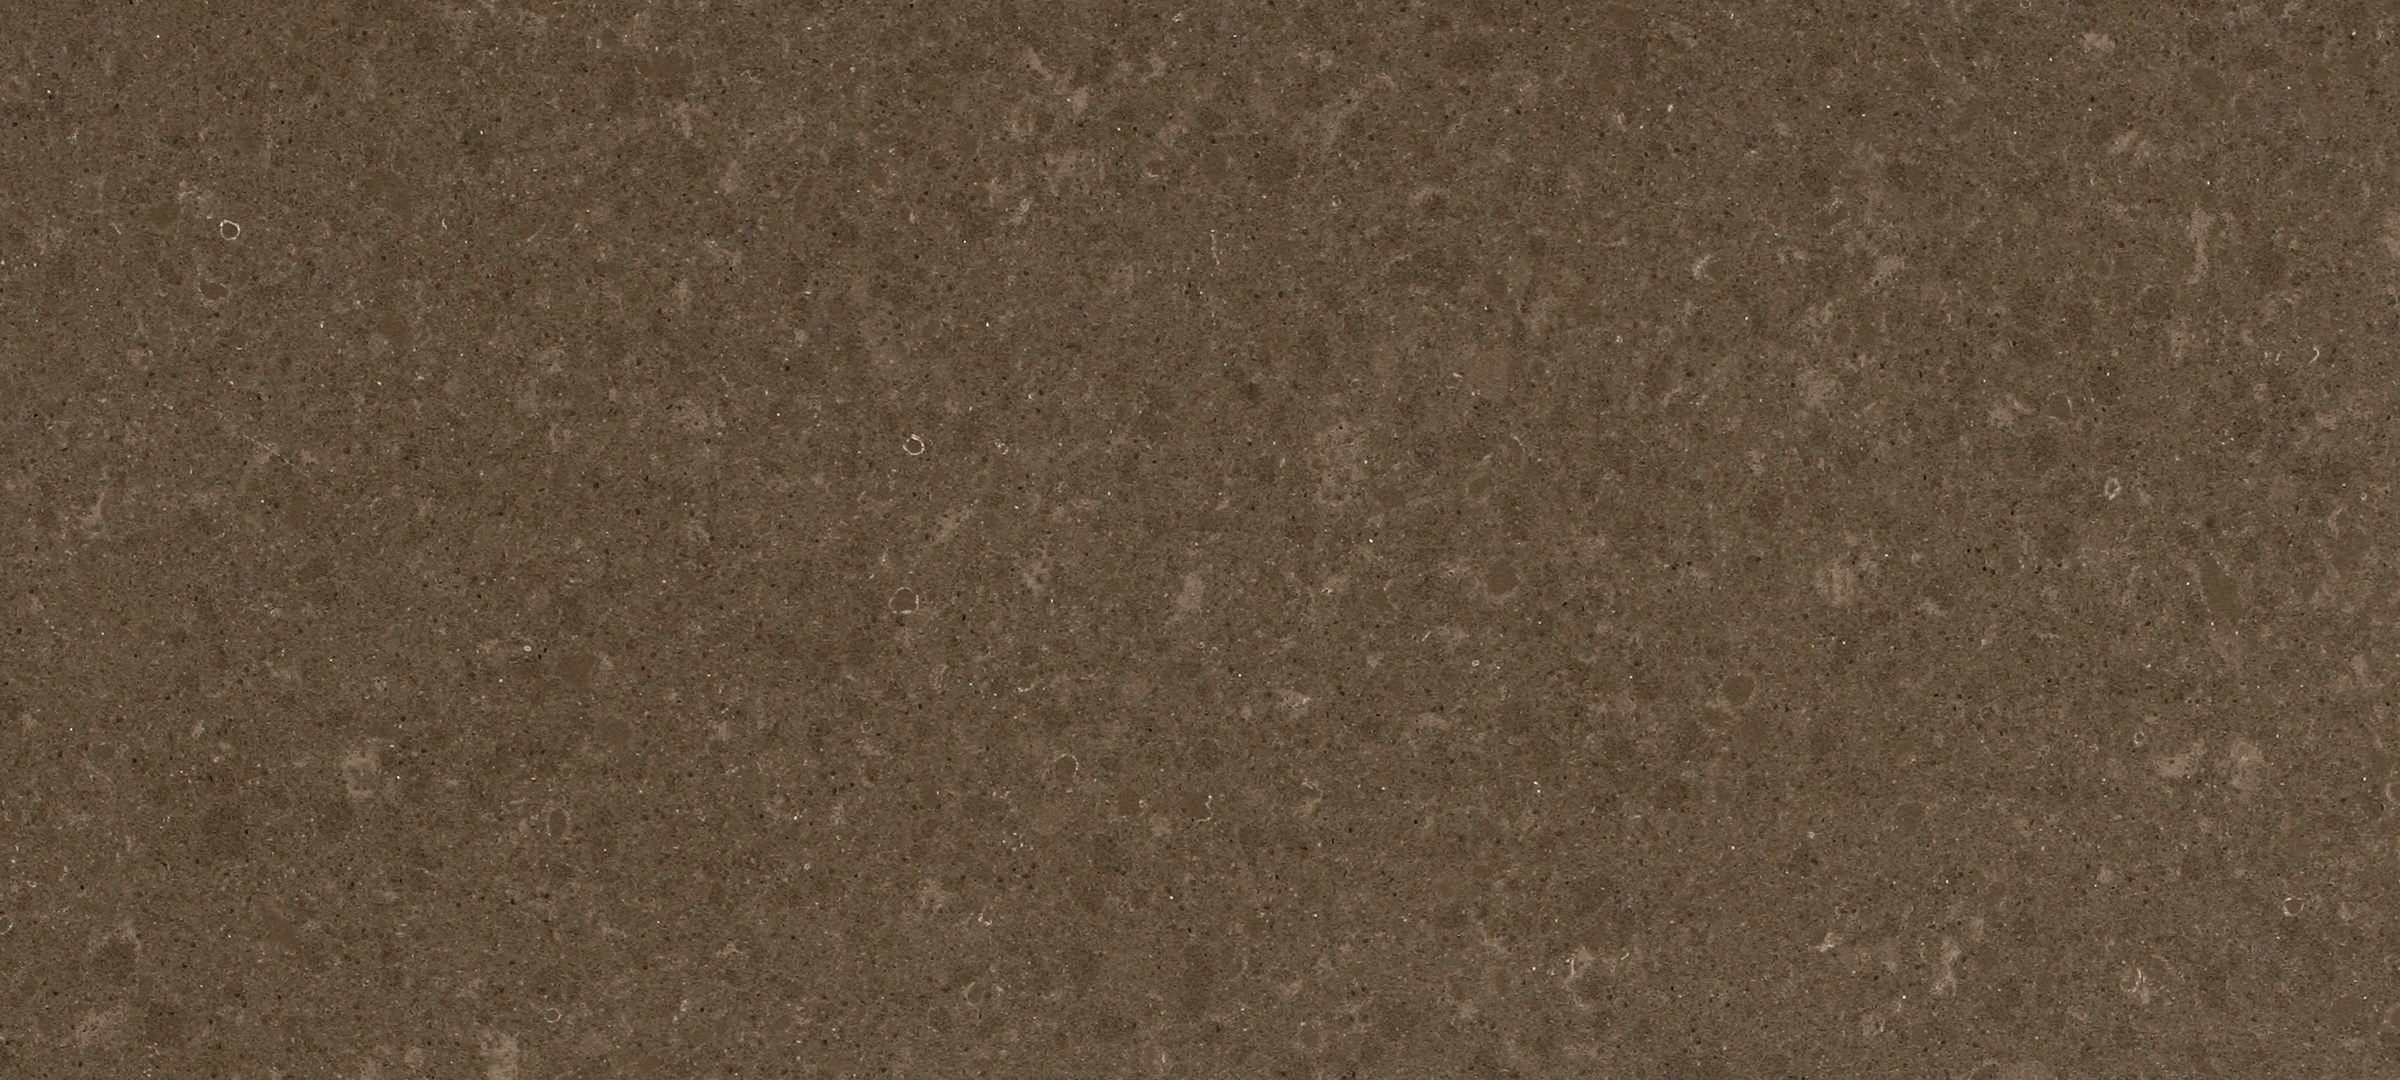 Wild Rice 4360 Granite Countertops Seattle